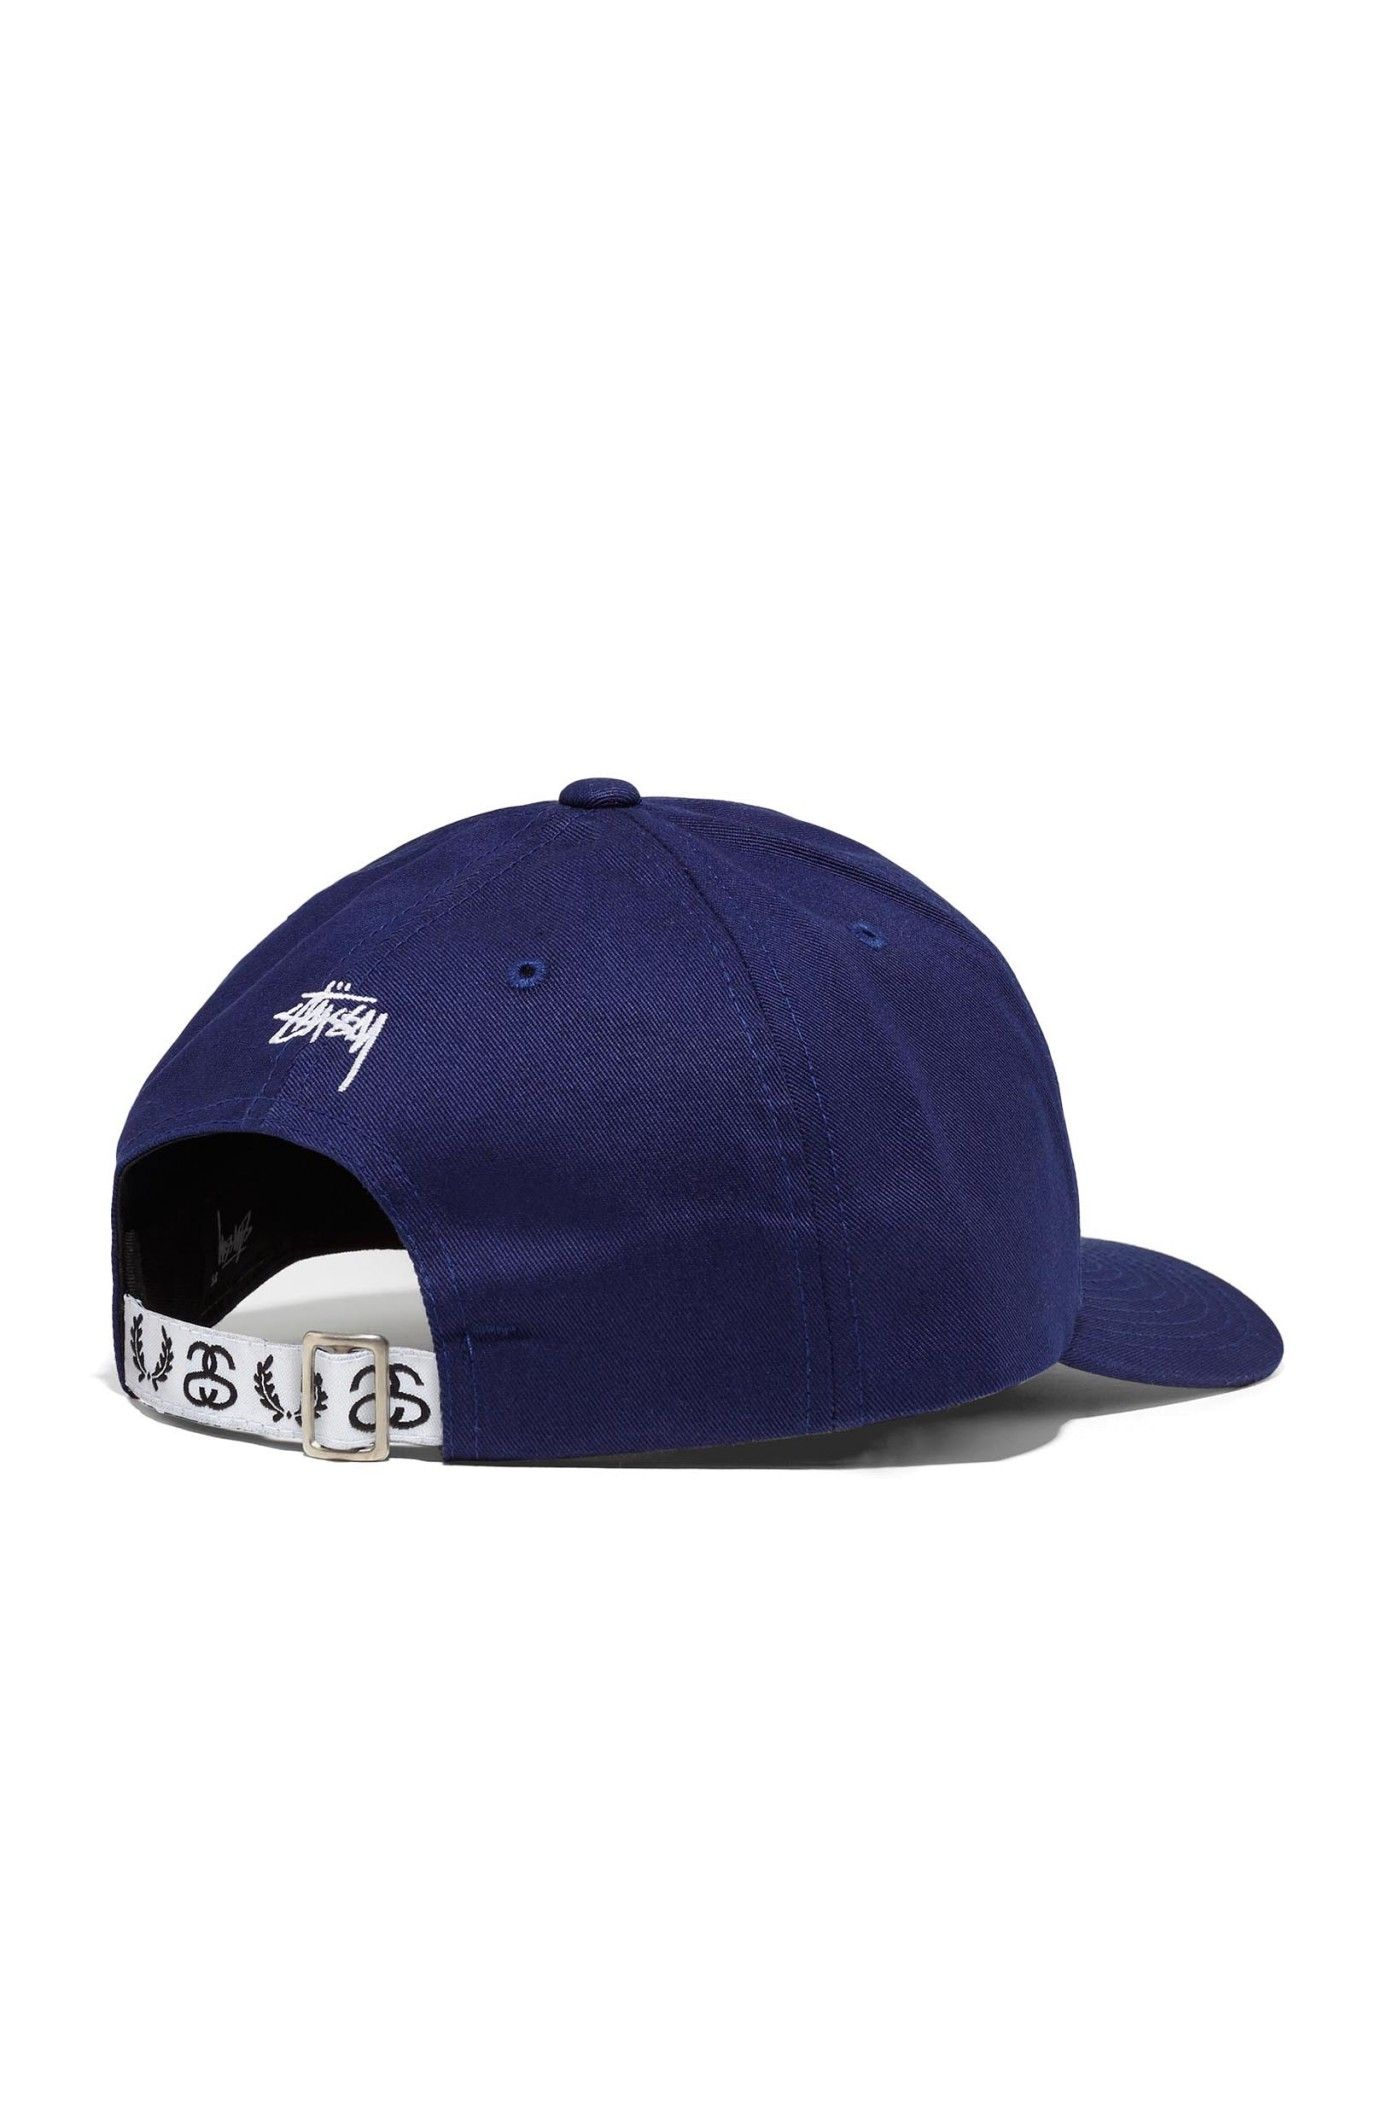 a5933fe5afc Fred Perry - Stüssy Cap French Navy Stussy Cap